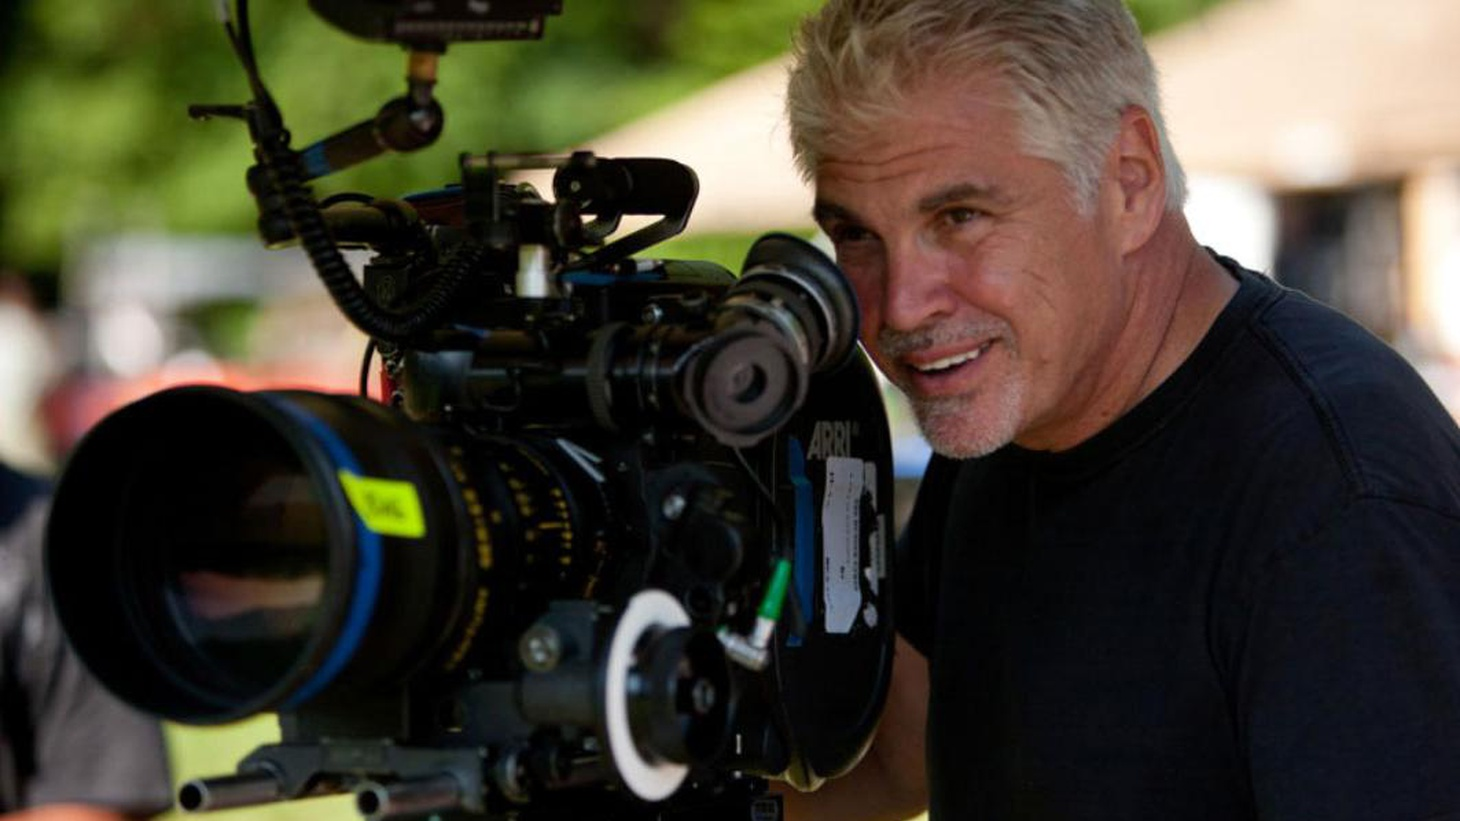 SPOILER ALERT: In the first 5 minutes, Gary Ross gives information that may spoil the plot for listeners who are unfamiliar with The Hunger Games.